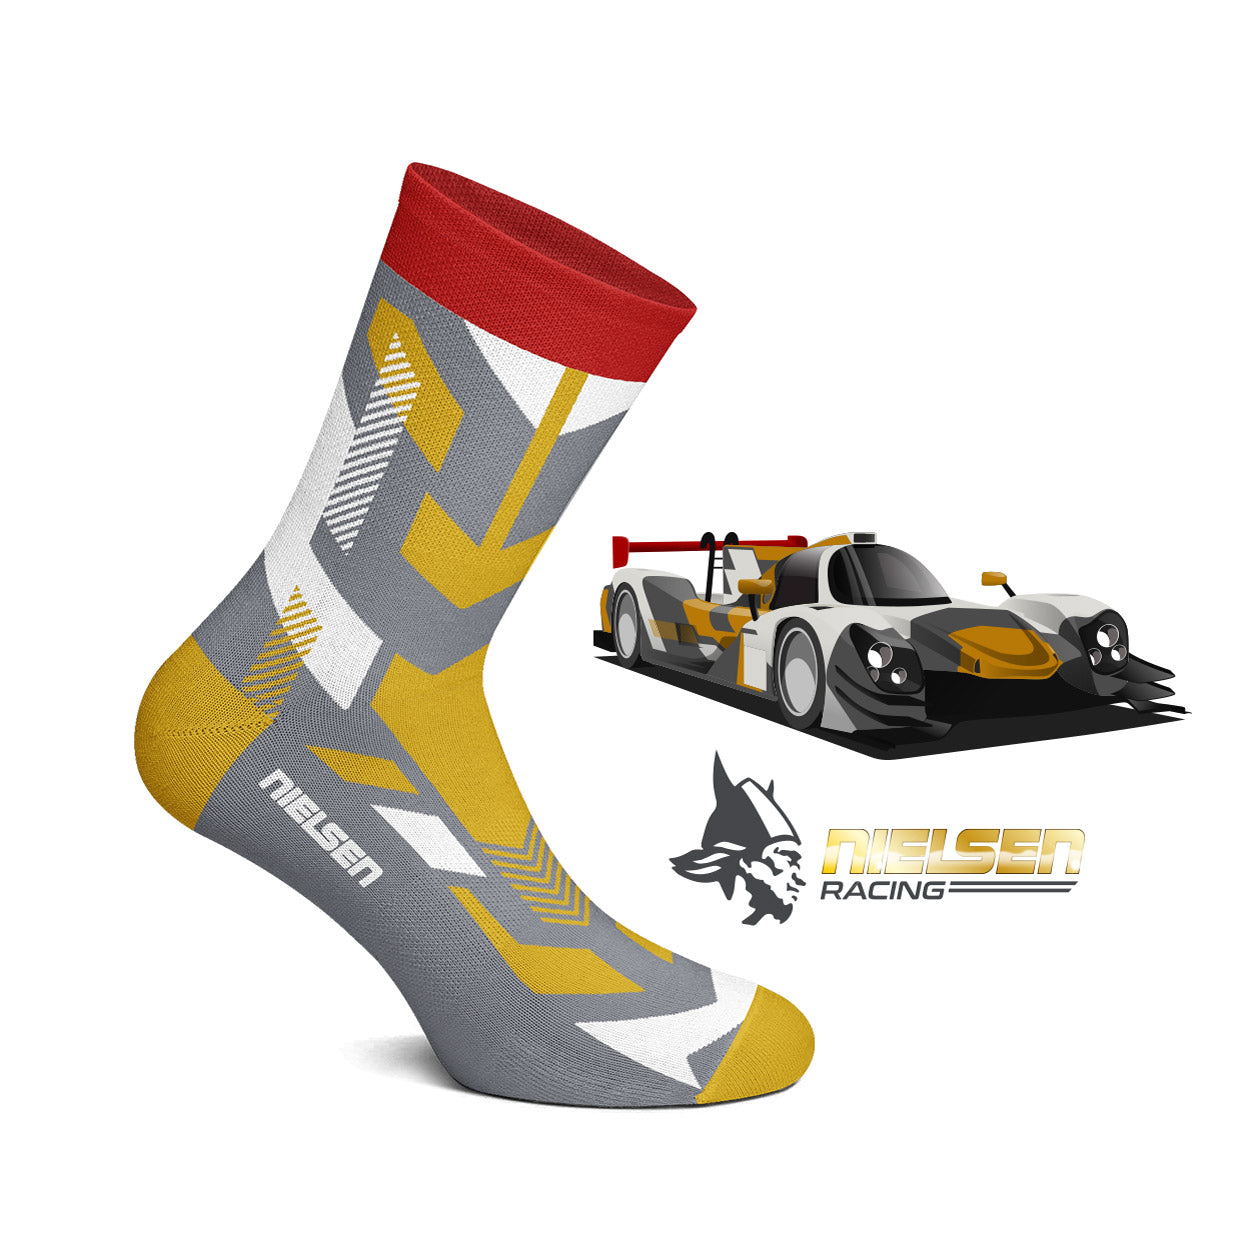 Nielsen Racing Socks